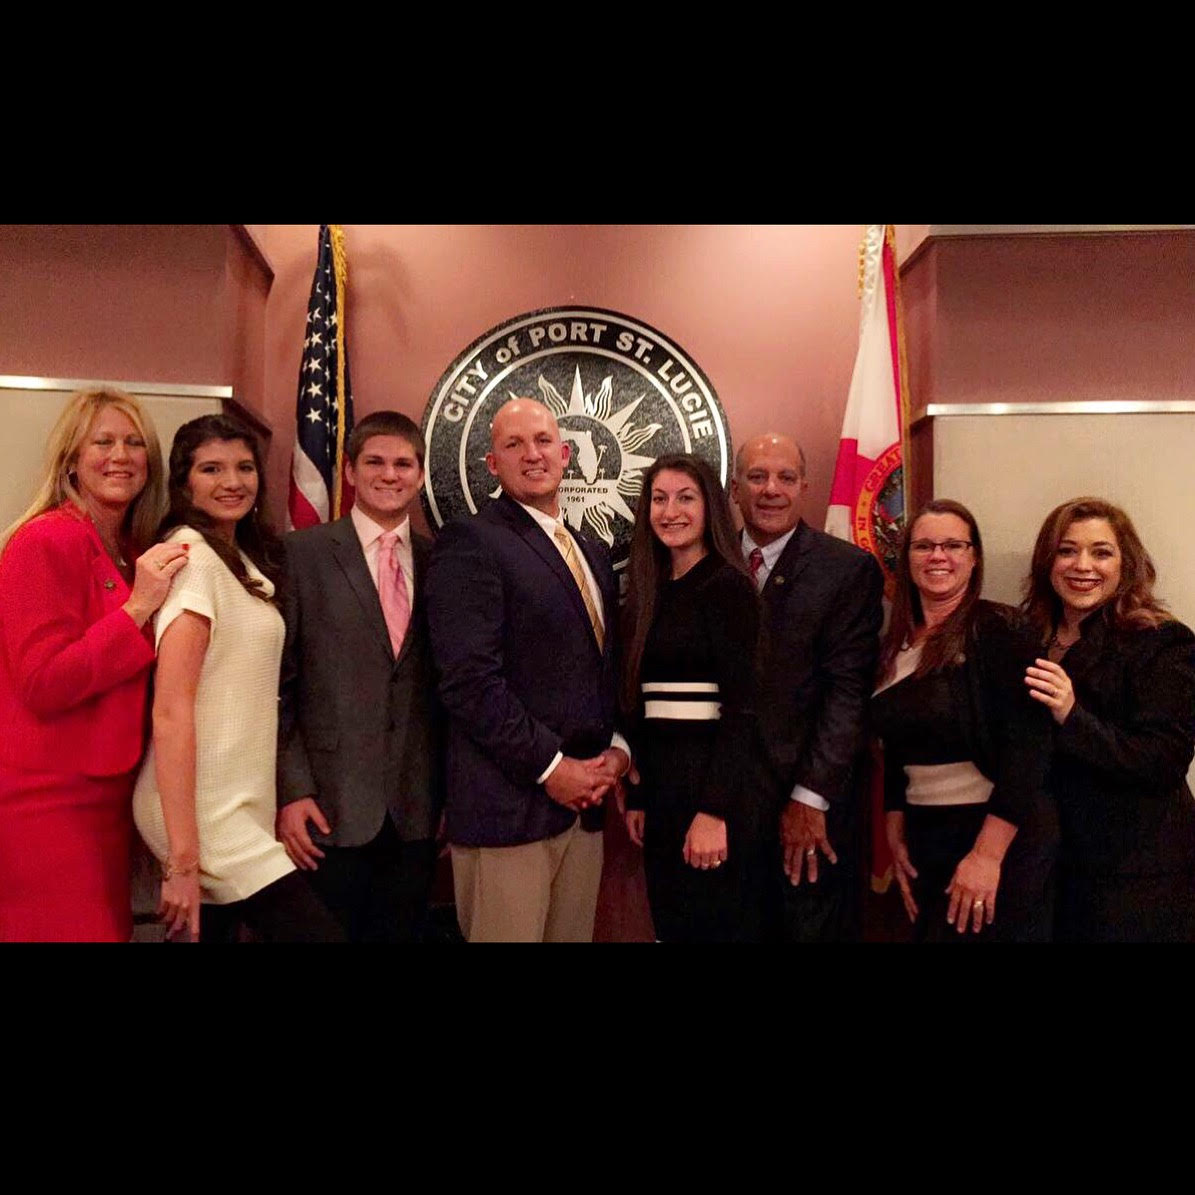 TARS with Port St Lucie City Council